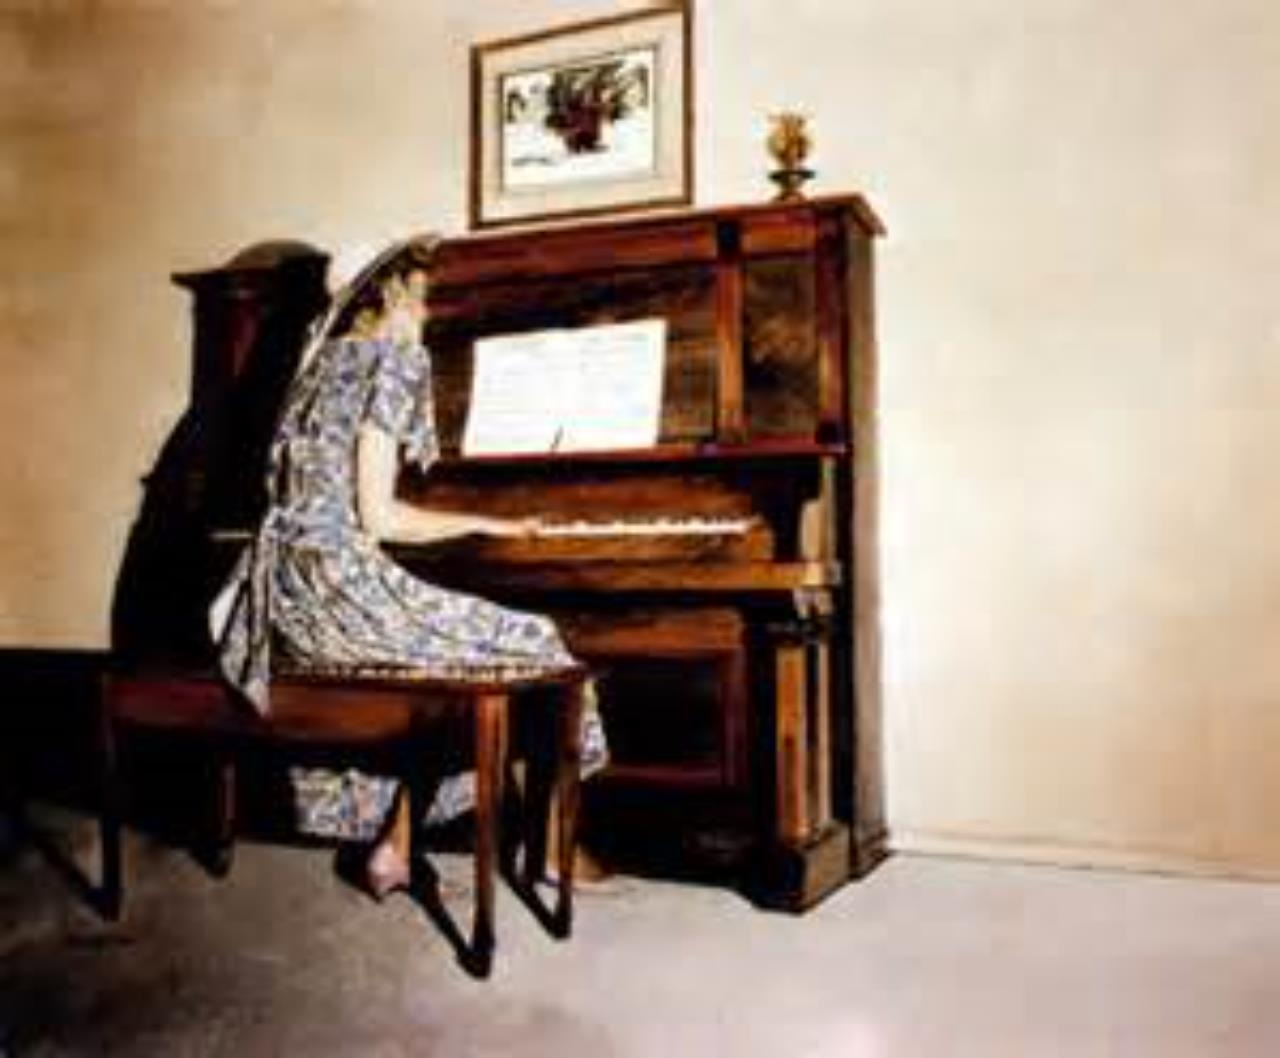 Her Piano Tune poetry stories